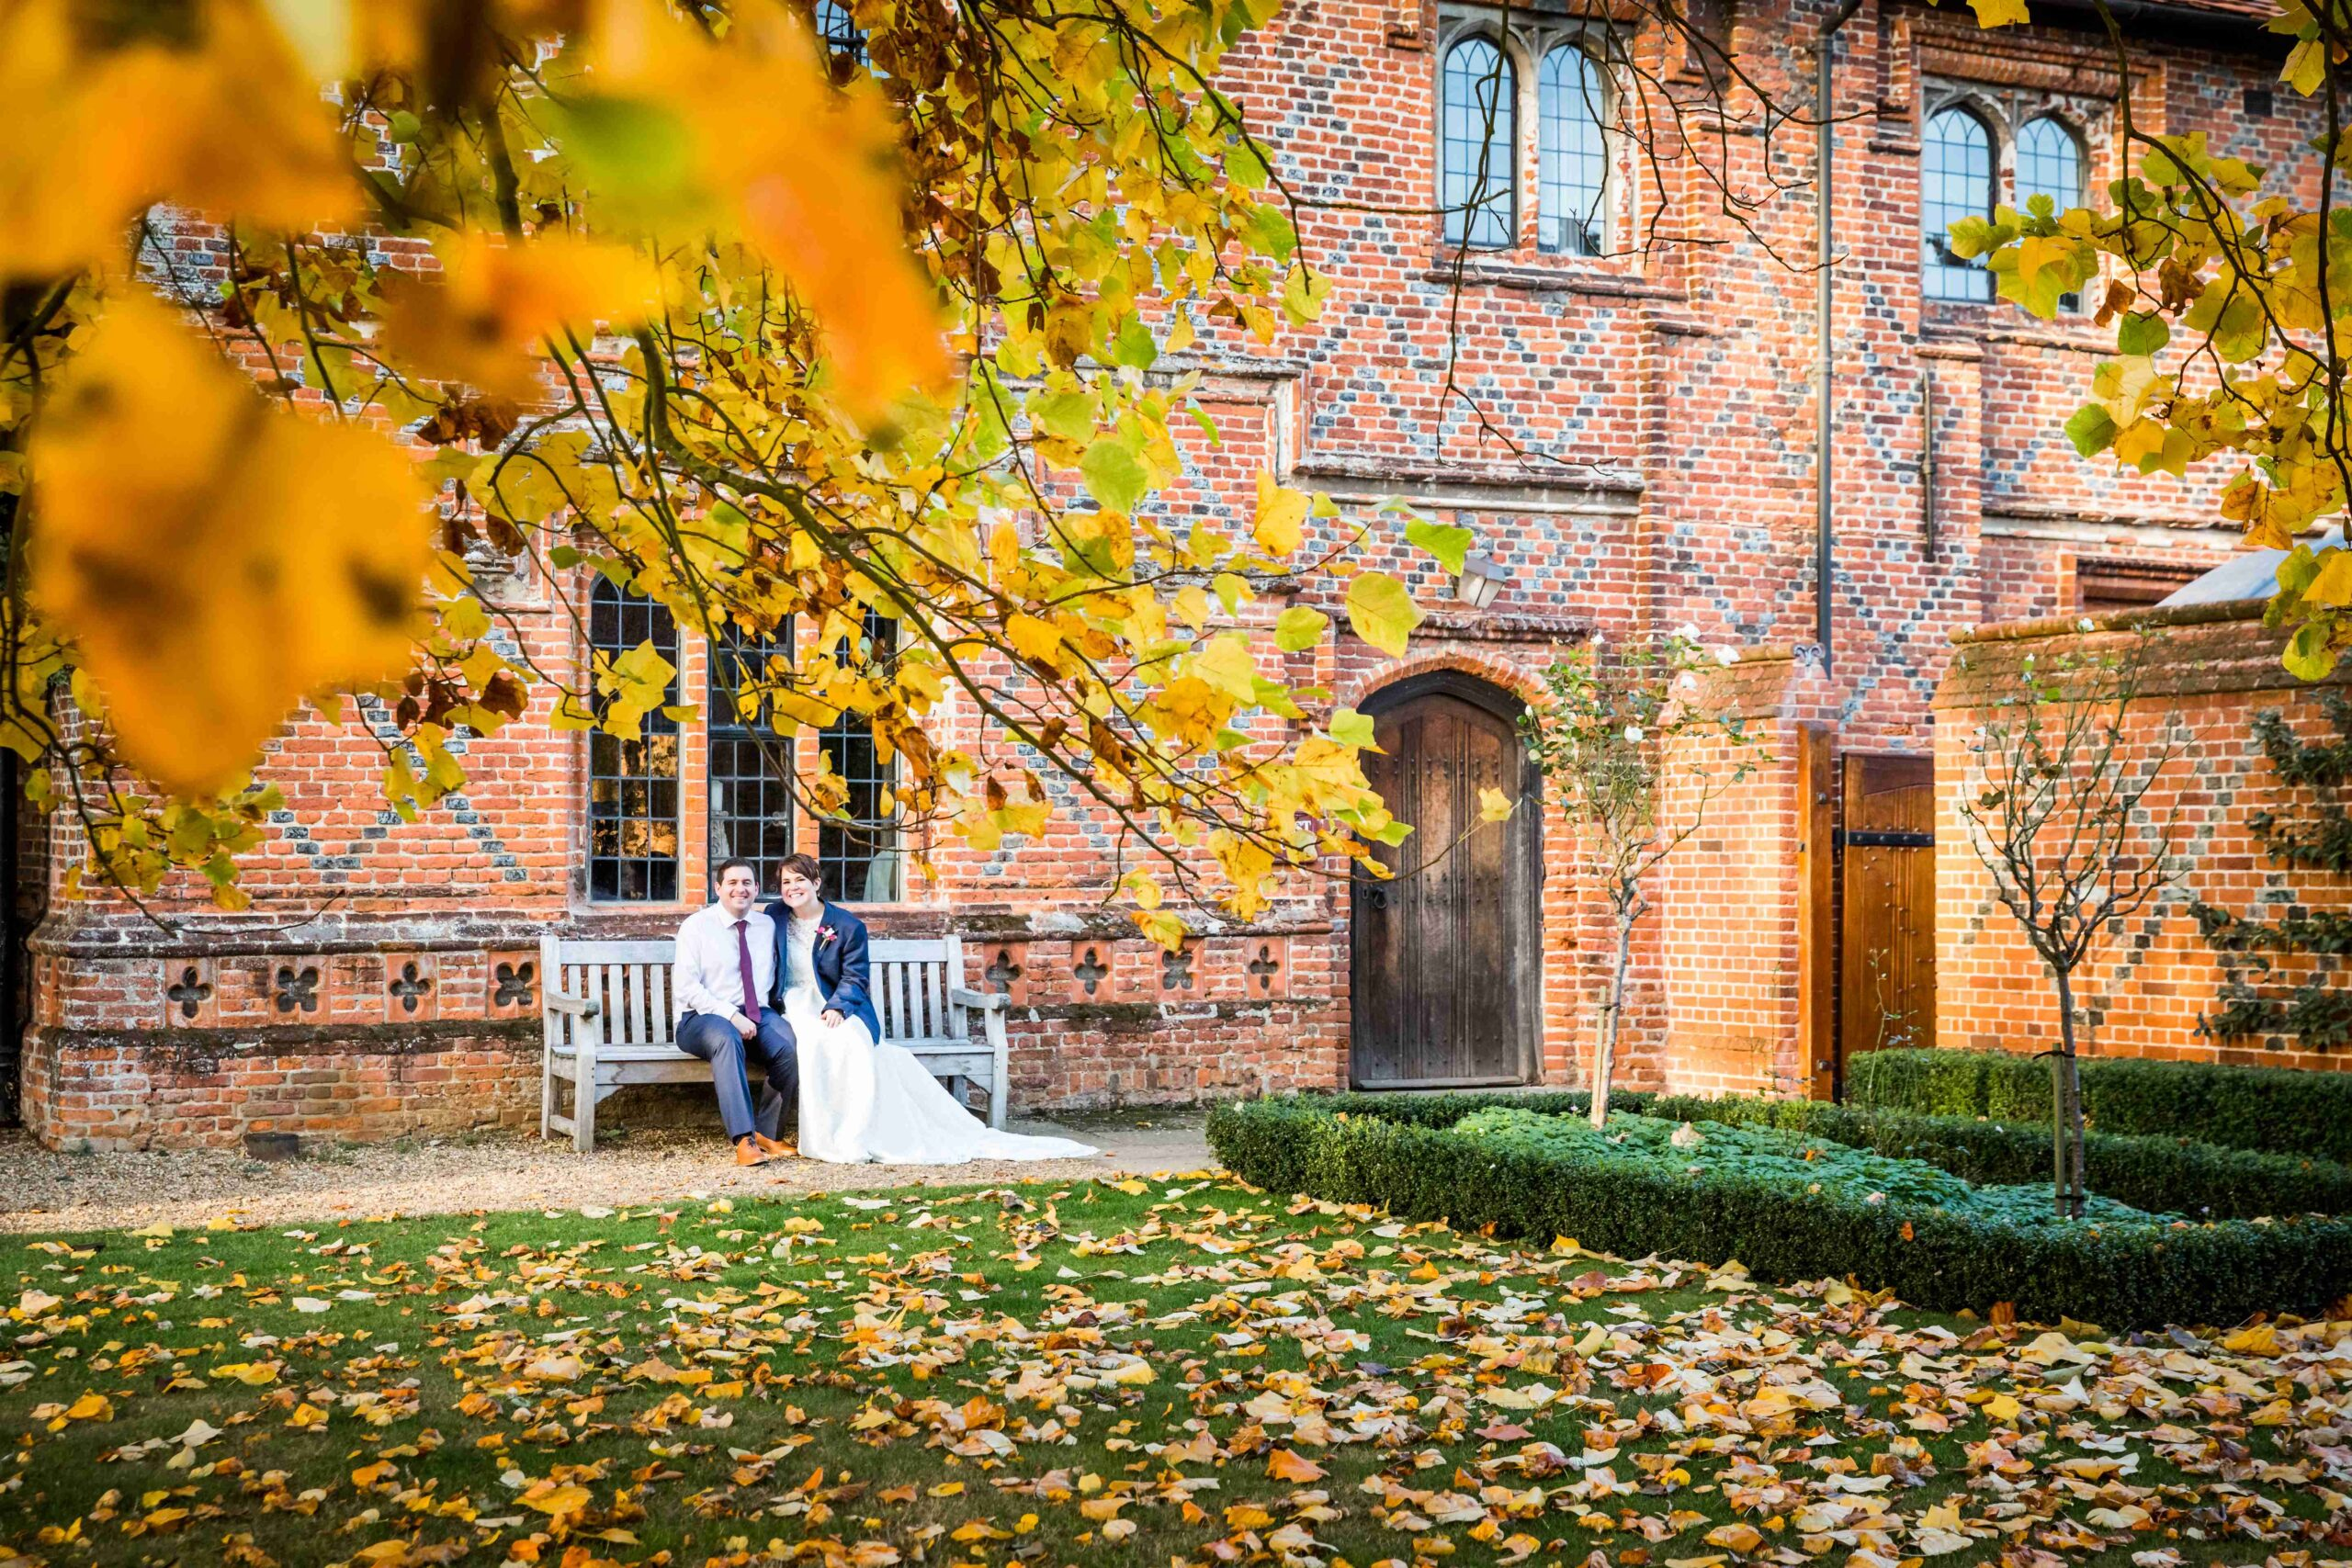 Wedding couple, Autumn leaves